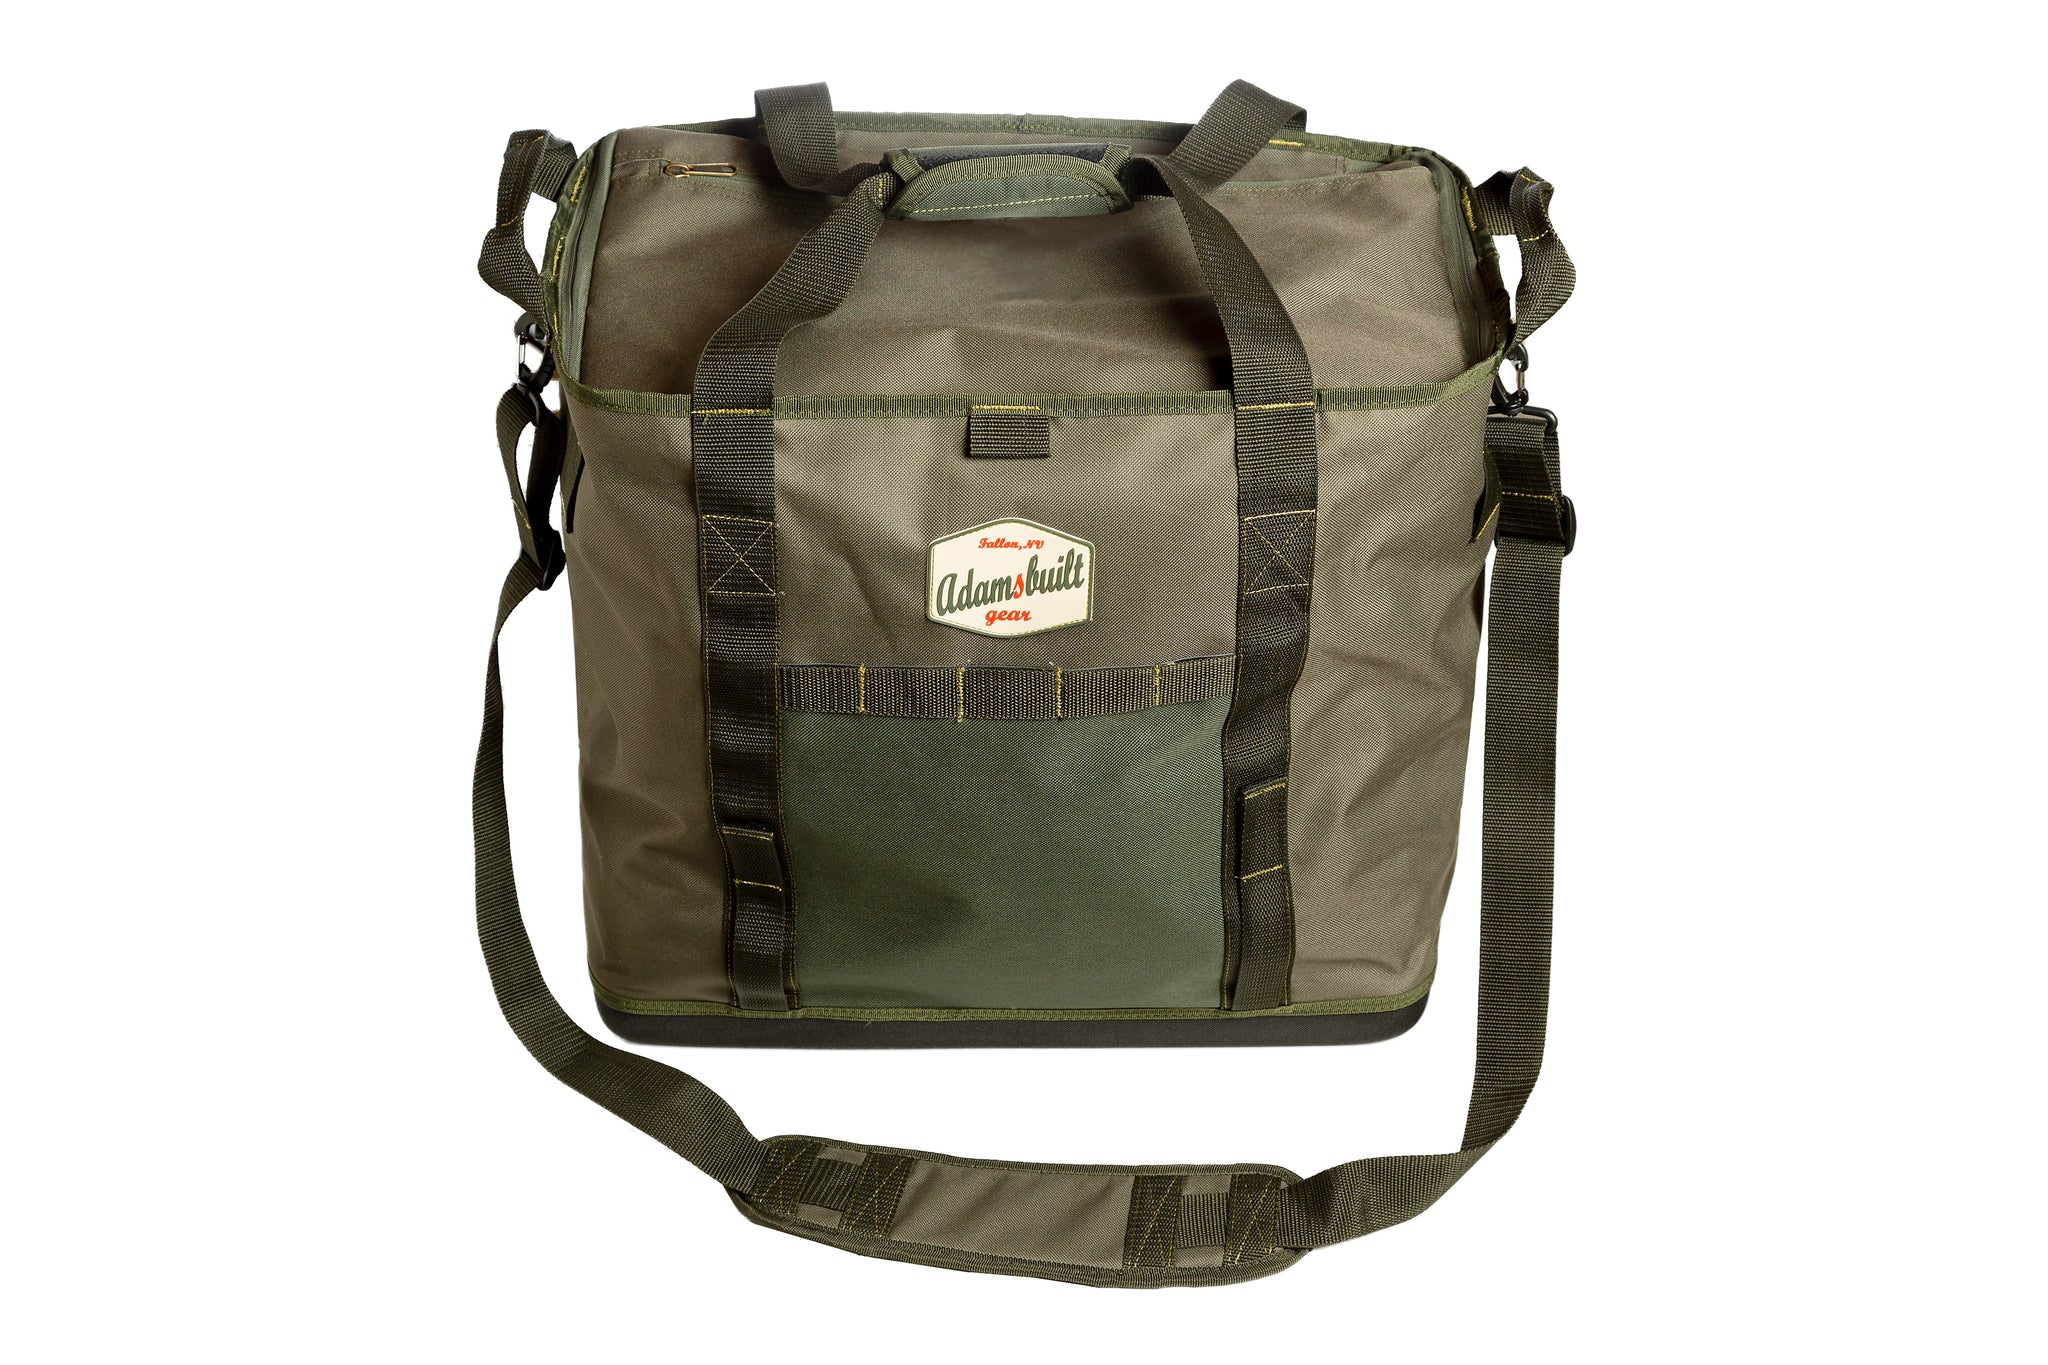 Klamath River Wader Bag